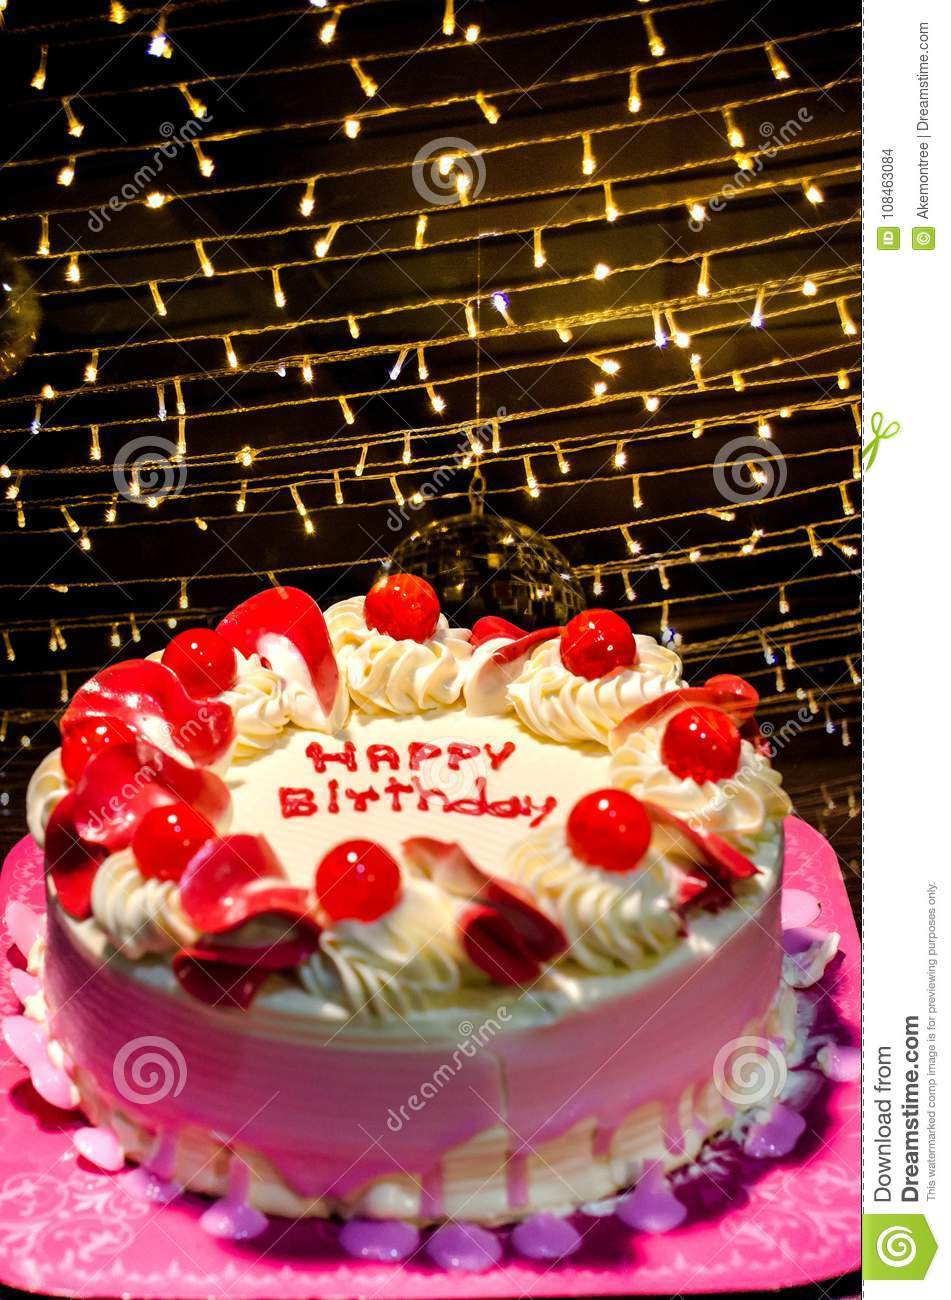 HBD Cake In Pink White Tone Decorate By Happy Birthday Words